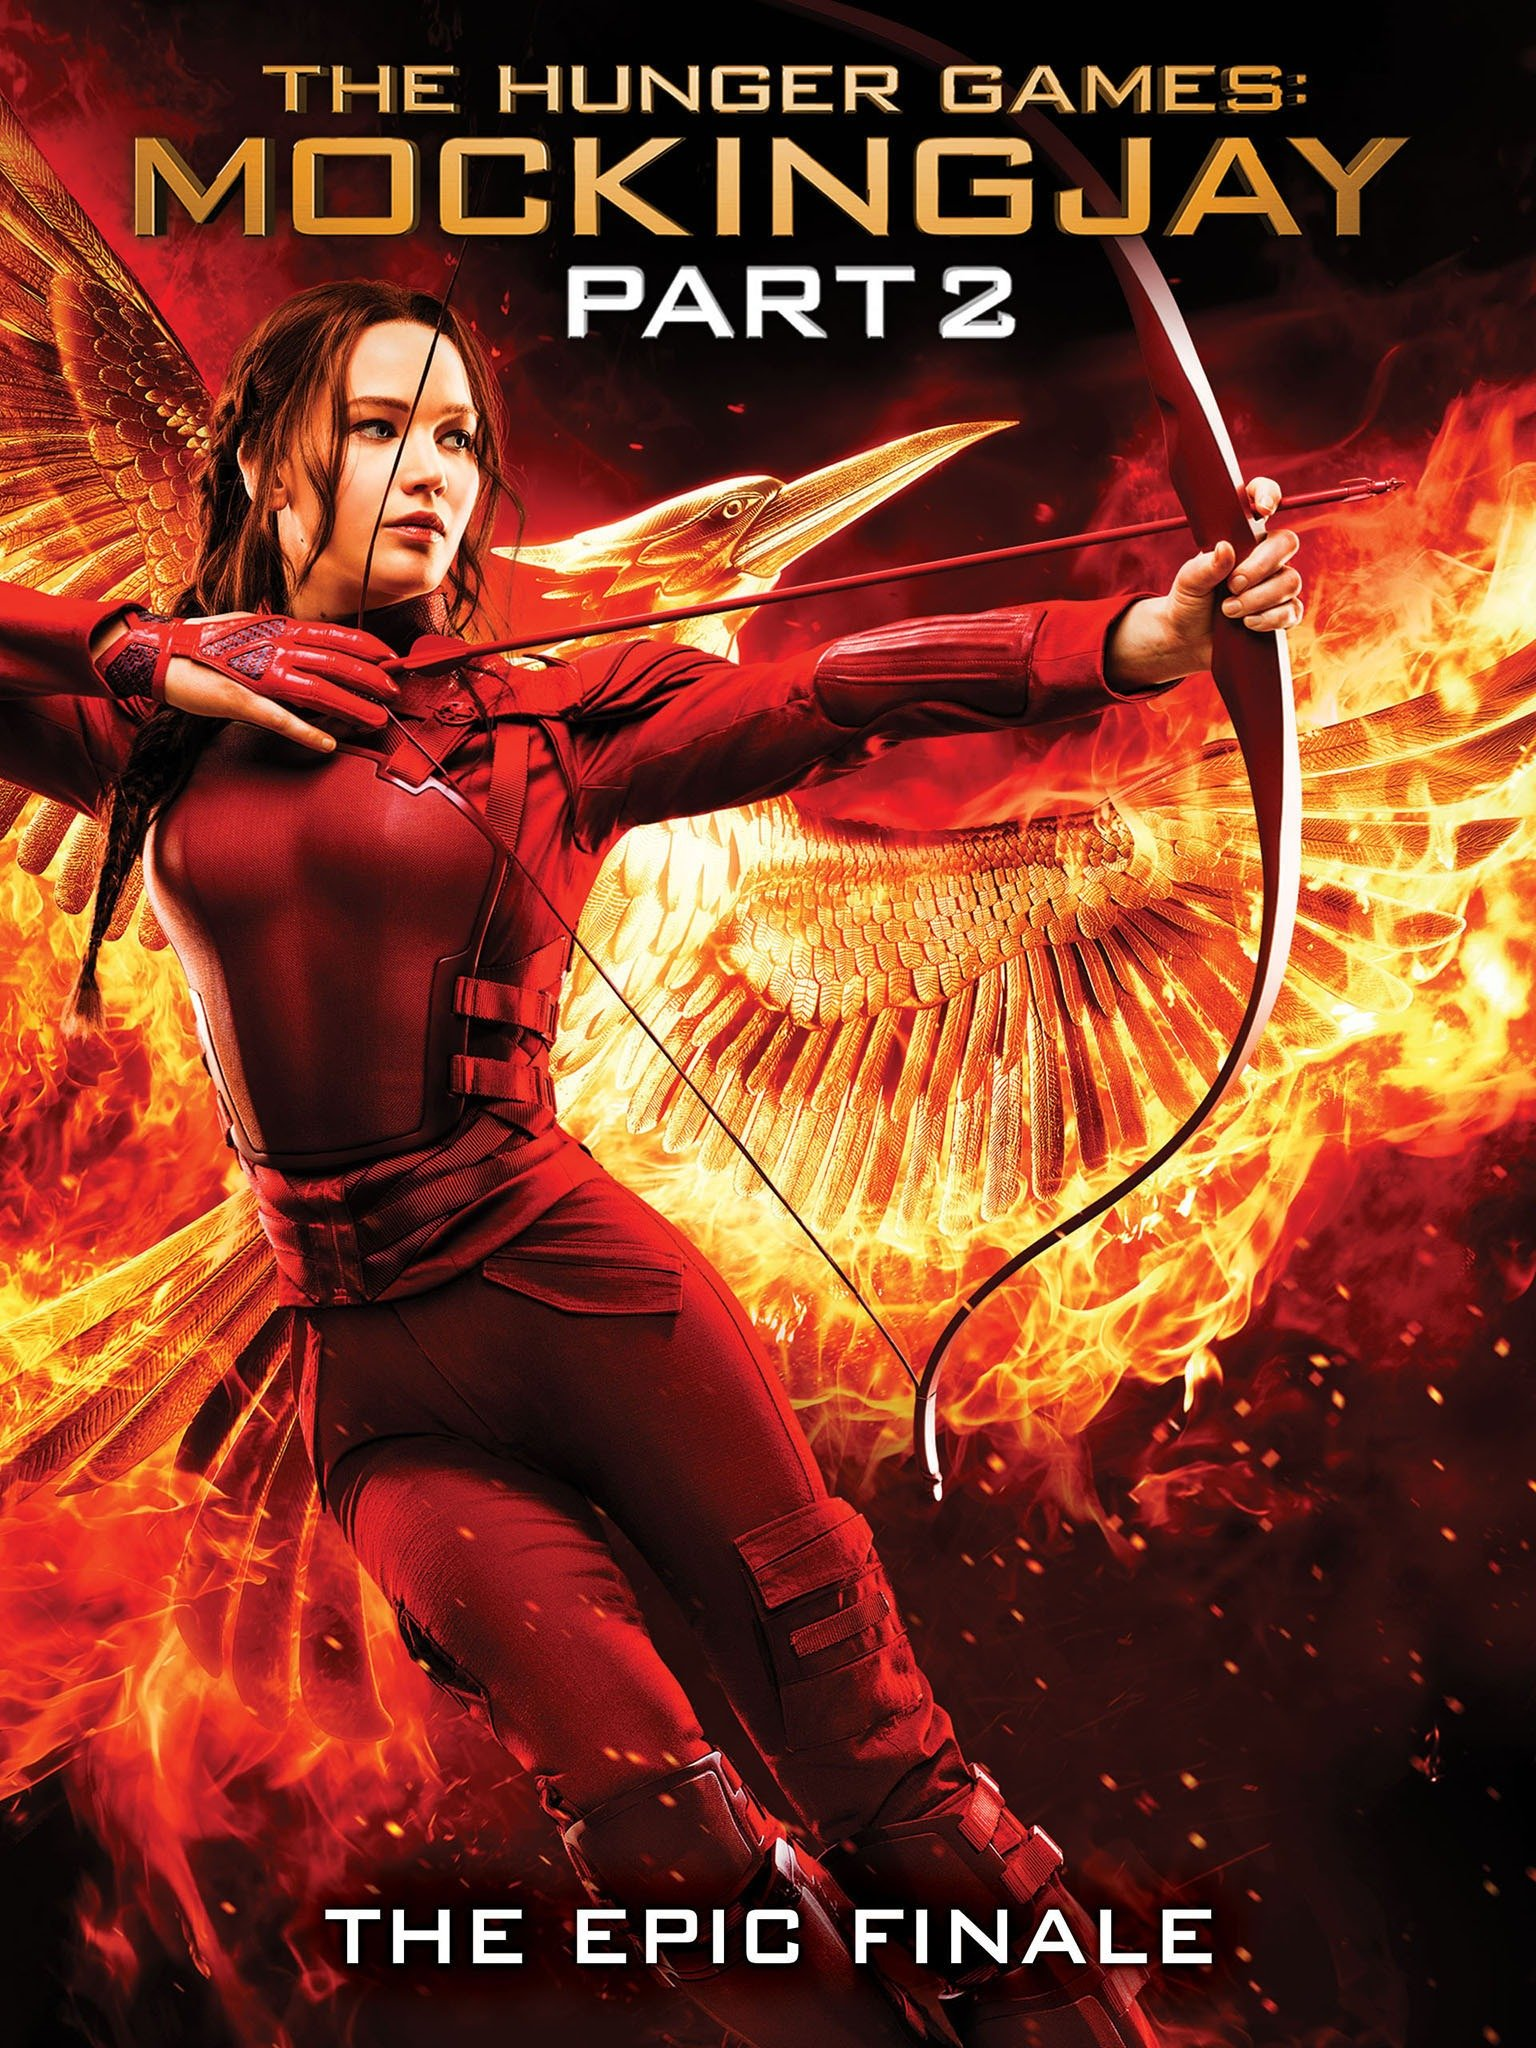 The Hunger Games Mockingjay Part 2 2015 Rotten Tomatoes